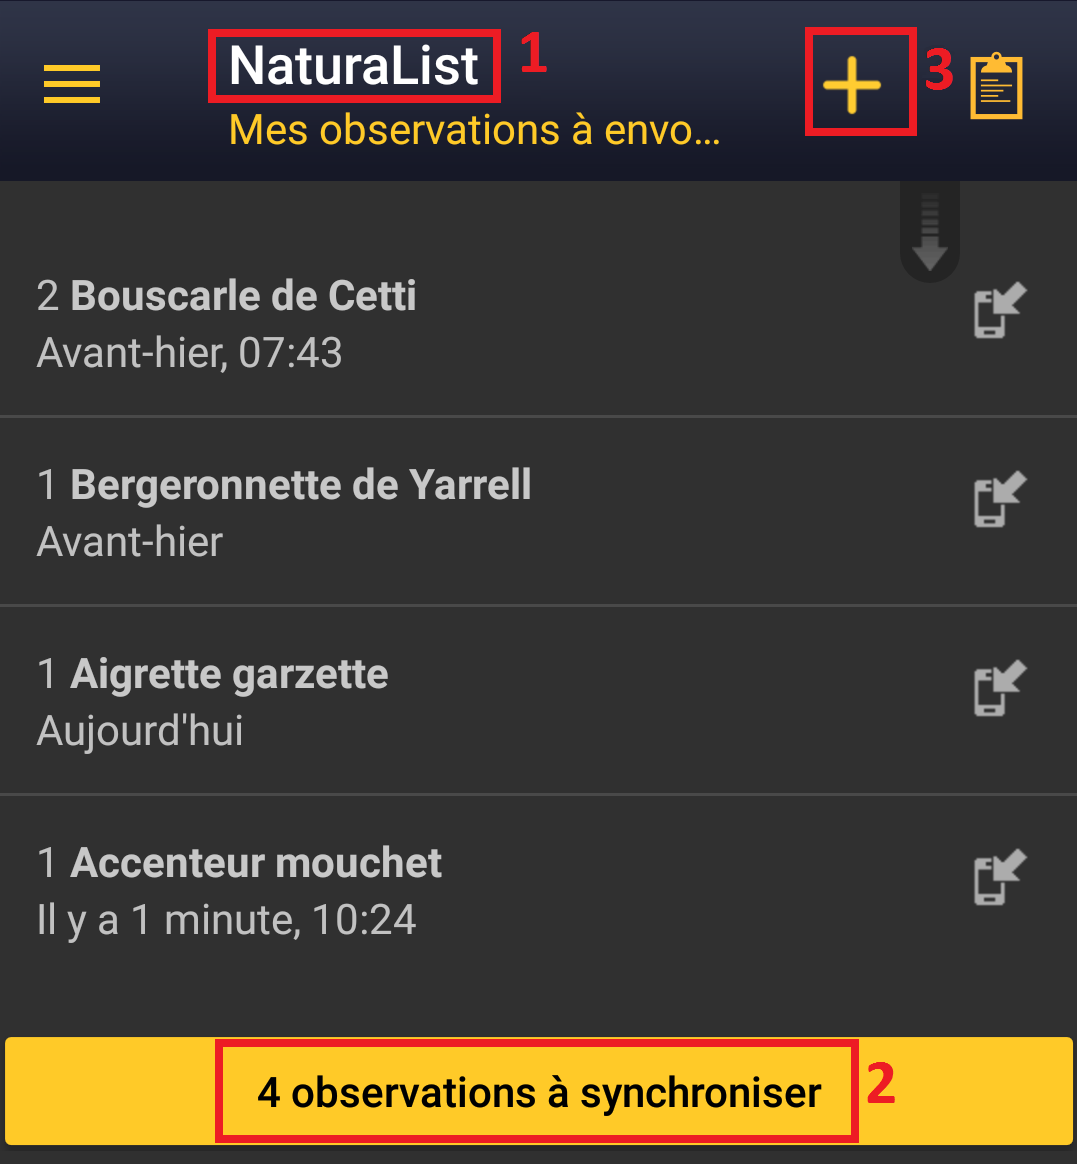 https://cdnfiles1.biolovision.net/www.faune-france.org/userfiles/ListeNaturaList/PointNaturalist/10-synchroniser-obs.png